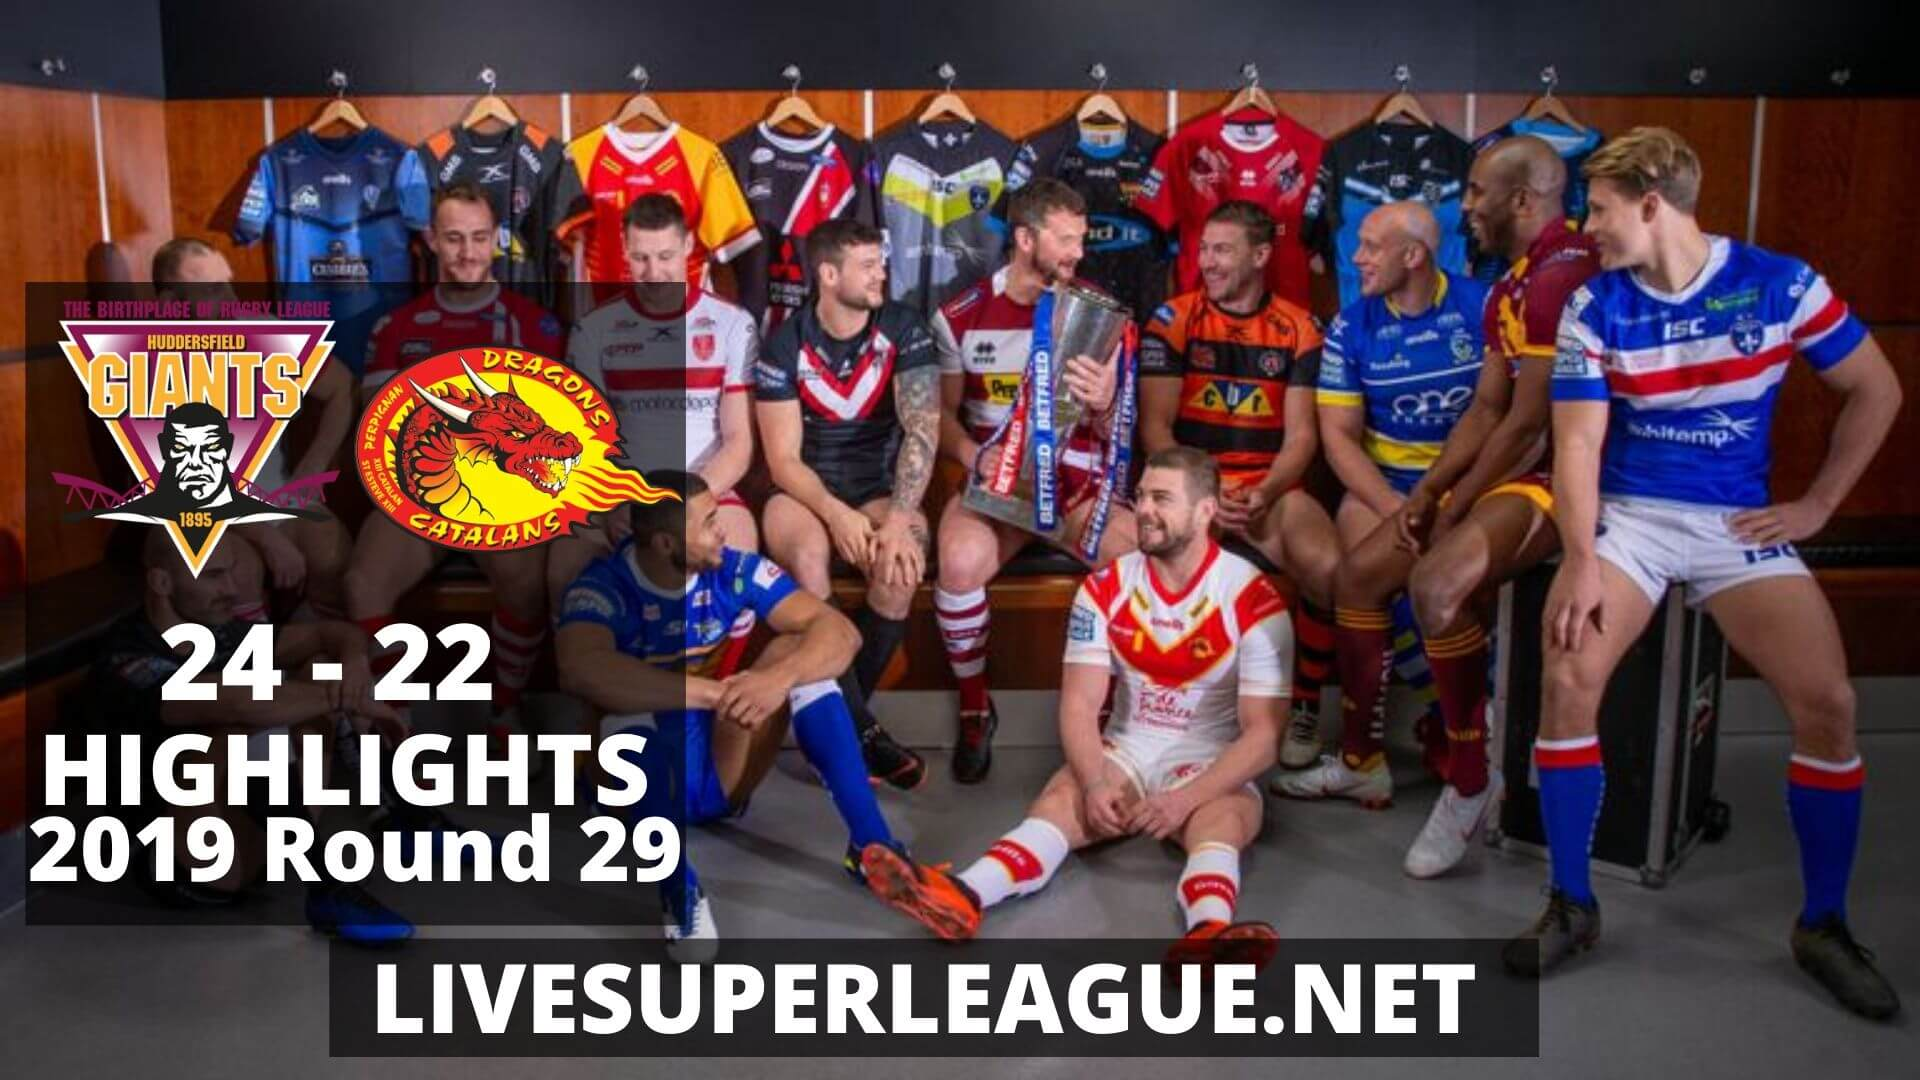 Huddersfield Giants Vs Catalans Dragons Highlights 2019 Round 29